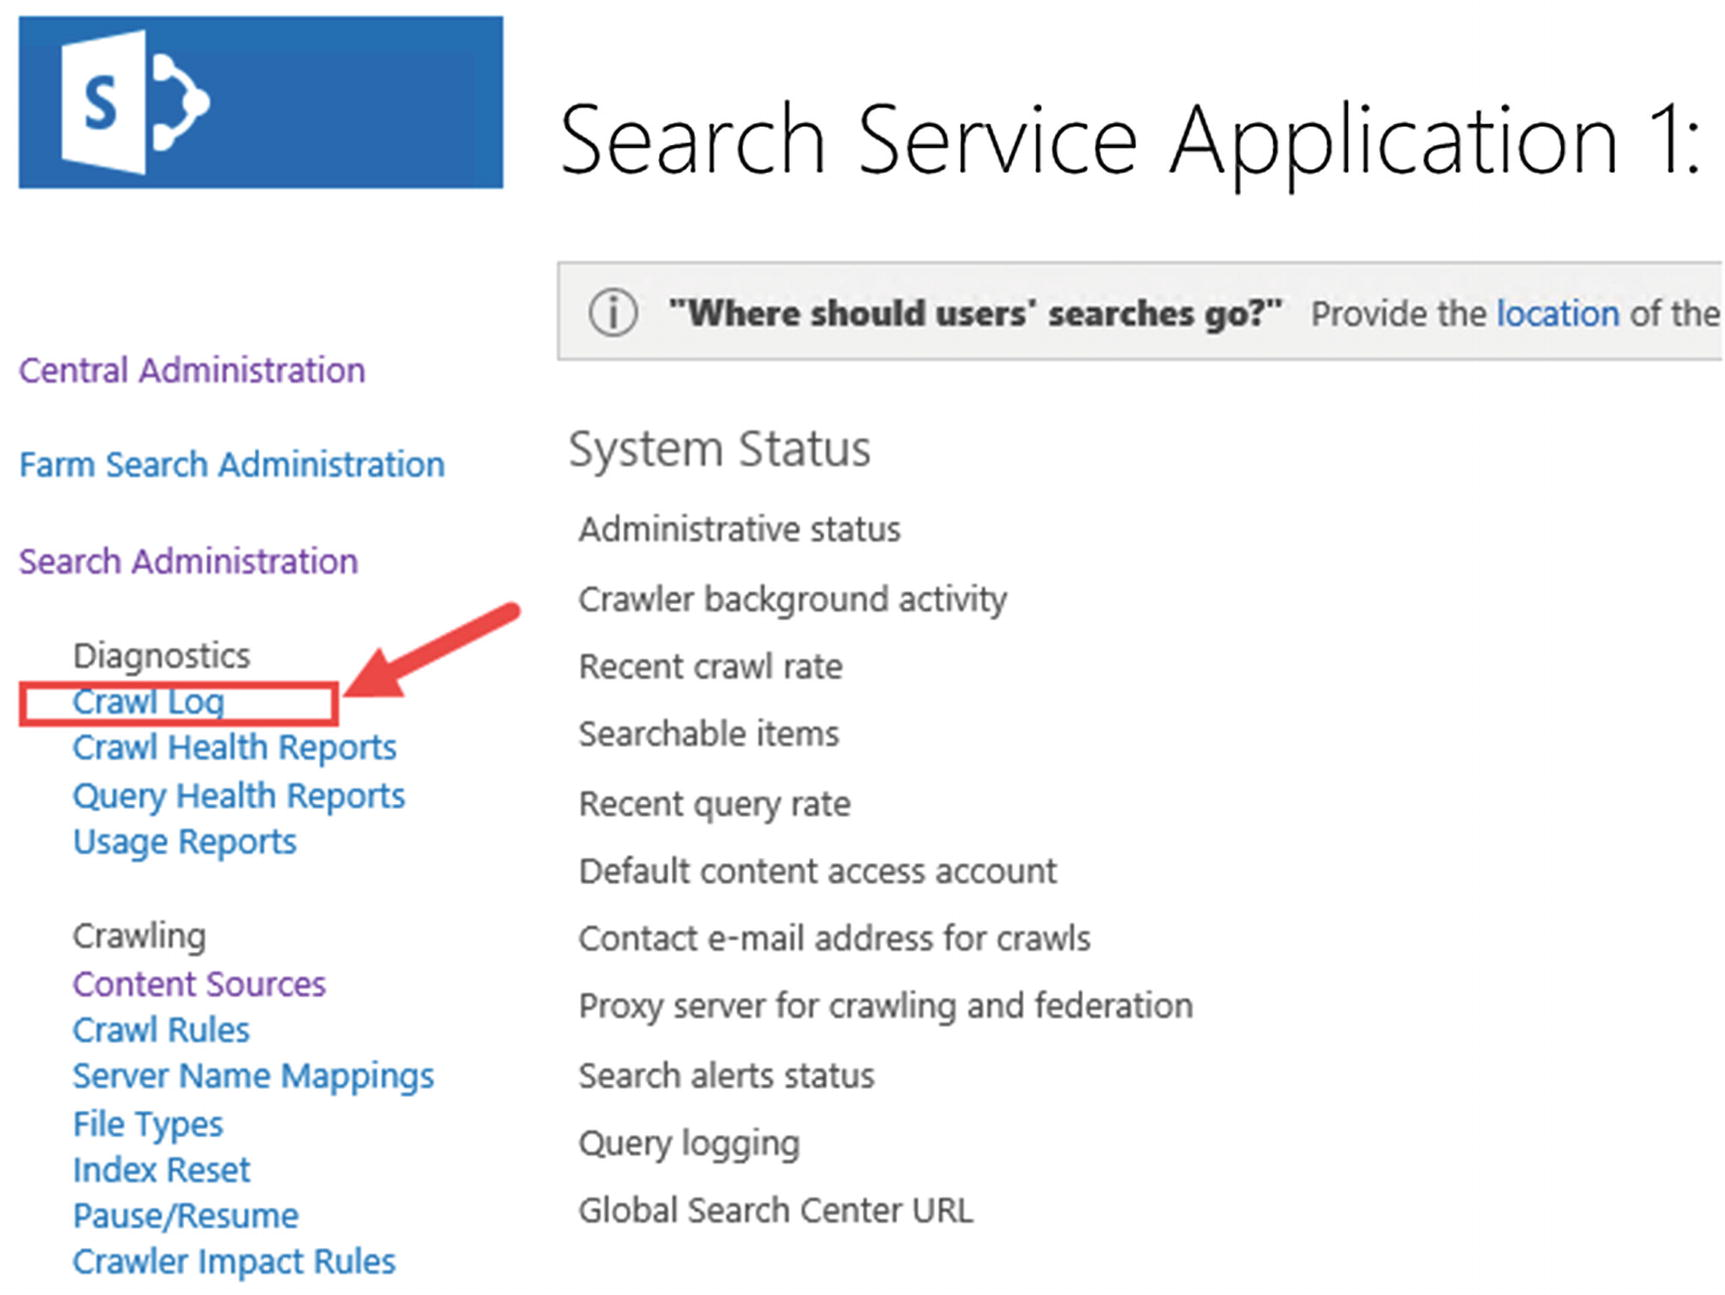 Configuring the Search Service Application | SpringerLink